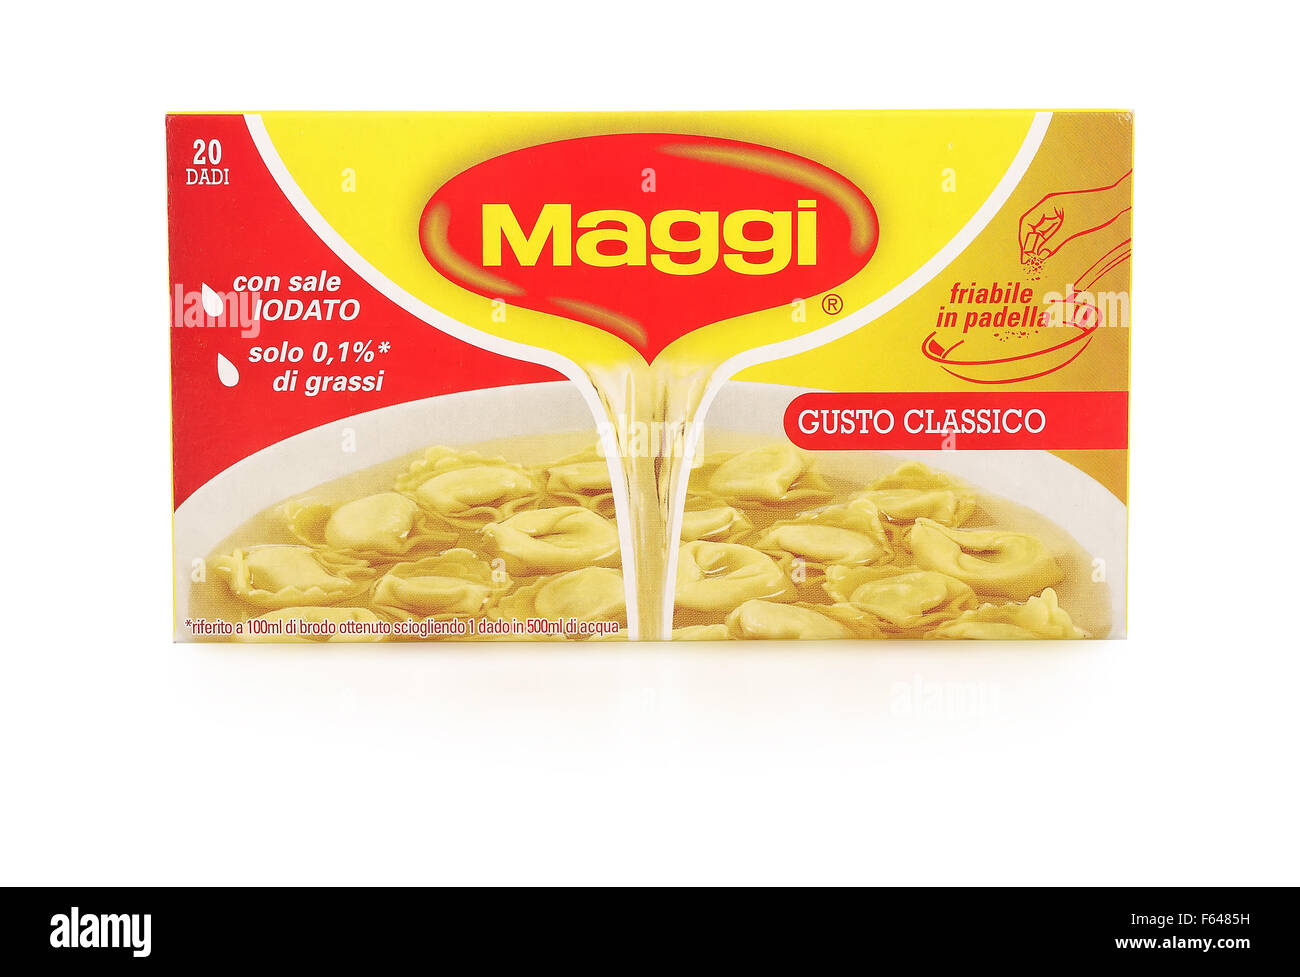 Maggi cubes, Owned by Nestle, Maggi is an international